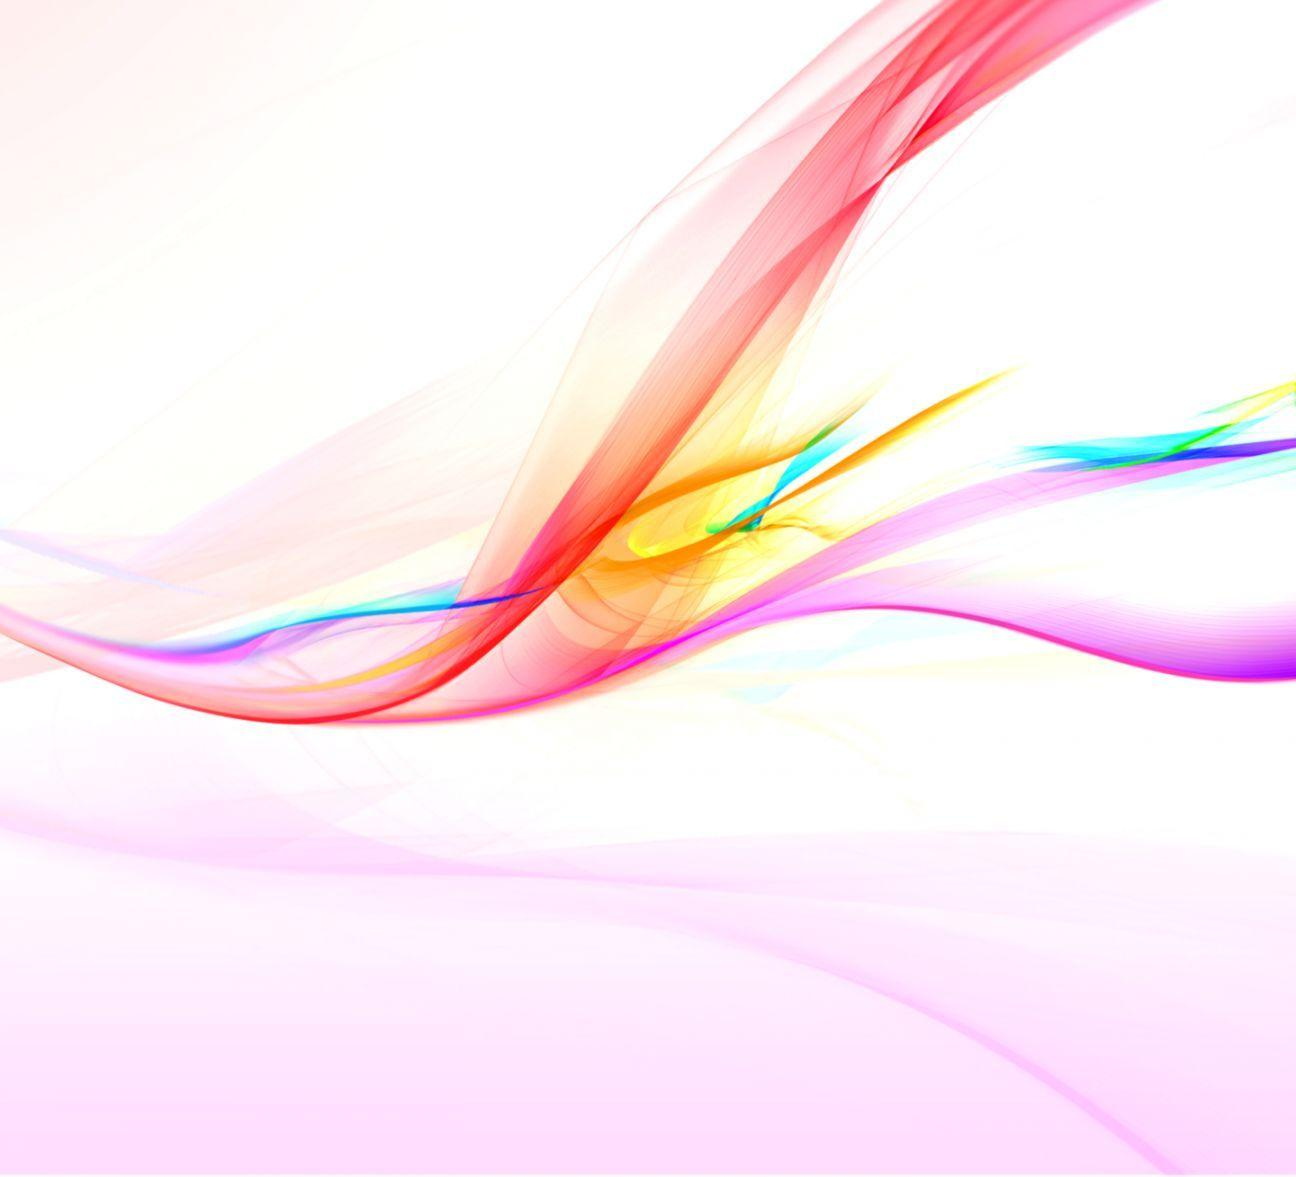 Sony Wallpapers - Wallpaper Cave